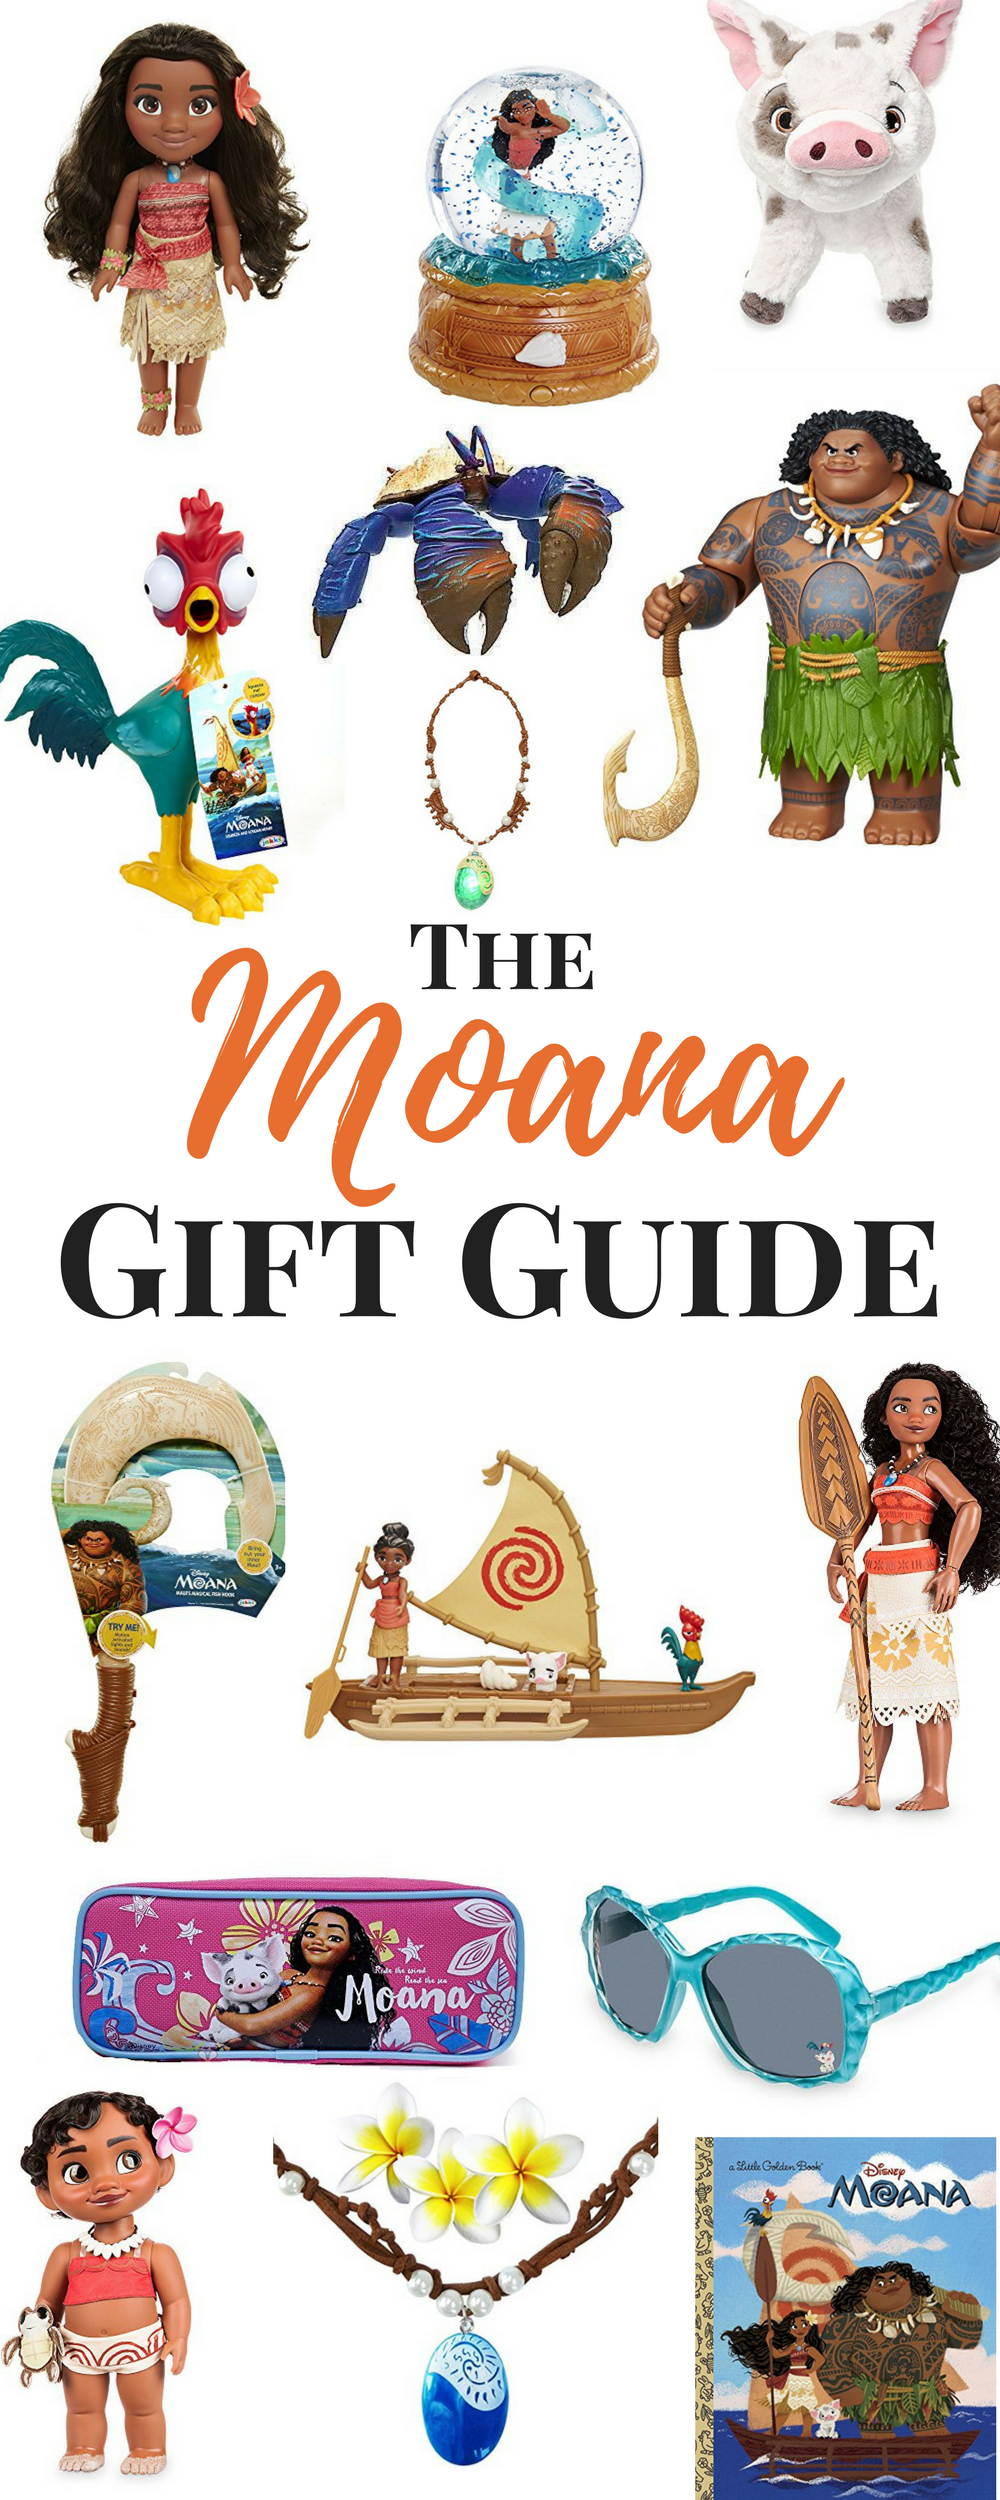 Moana Holiday Gift Guide - Whether you're looking for Moana birthday party ideas, a Moana costume, or searching for Moana gifts...or Maui Birthday of course...Heres a great list of Gift Ideas for children.  Disney Gifts, Moana, is sure to be the favorite this year.  Here are some best toy gift ideas from the movie.